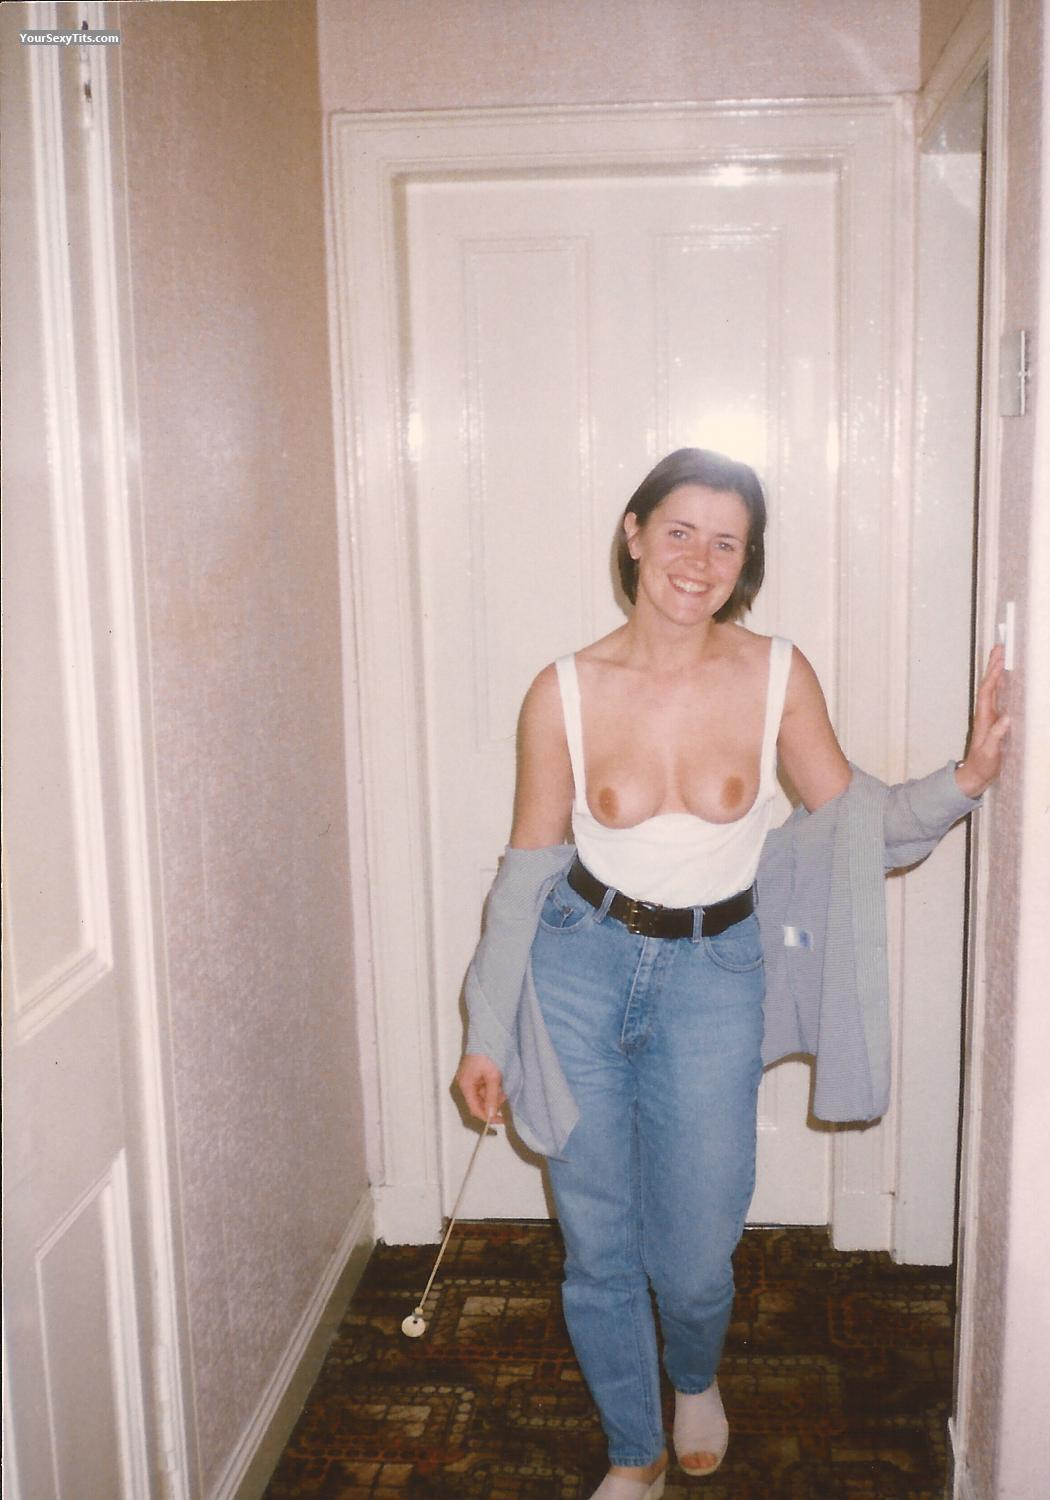 Medium Tits Topless Nellie